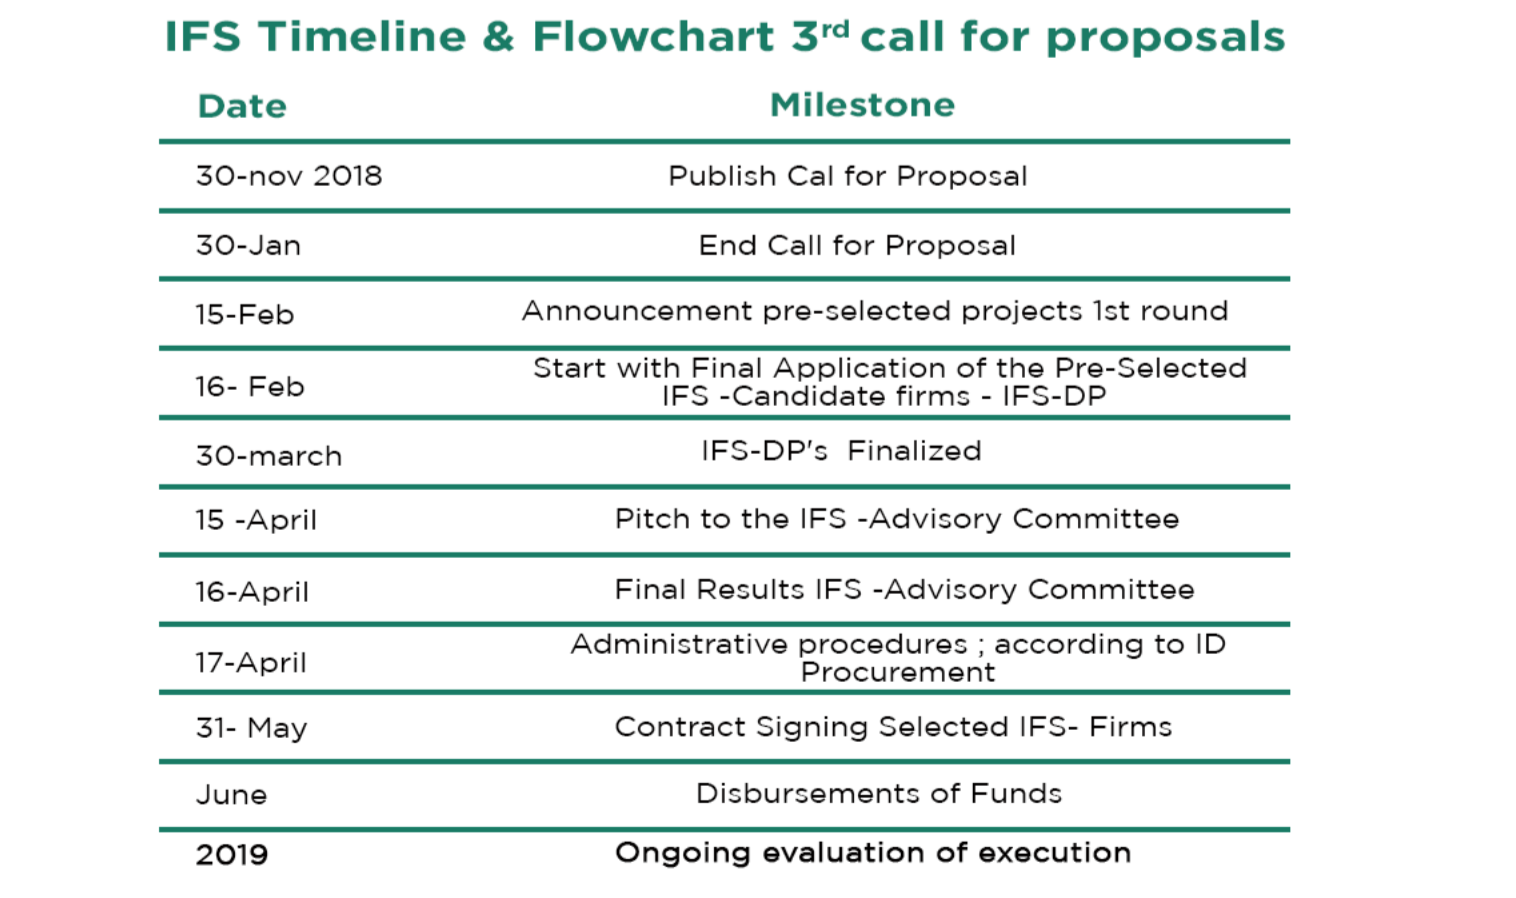 IFS Timeline & Flowchart 3rd call for proposals